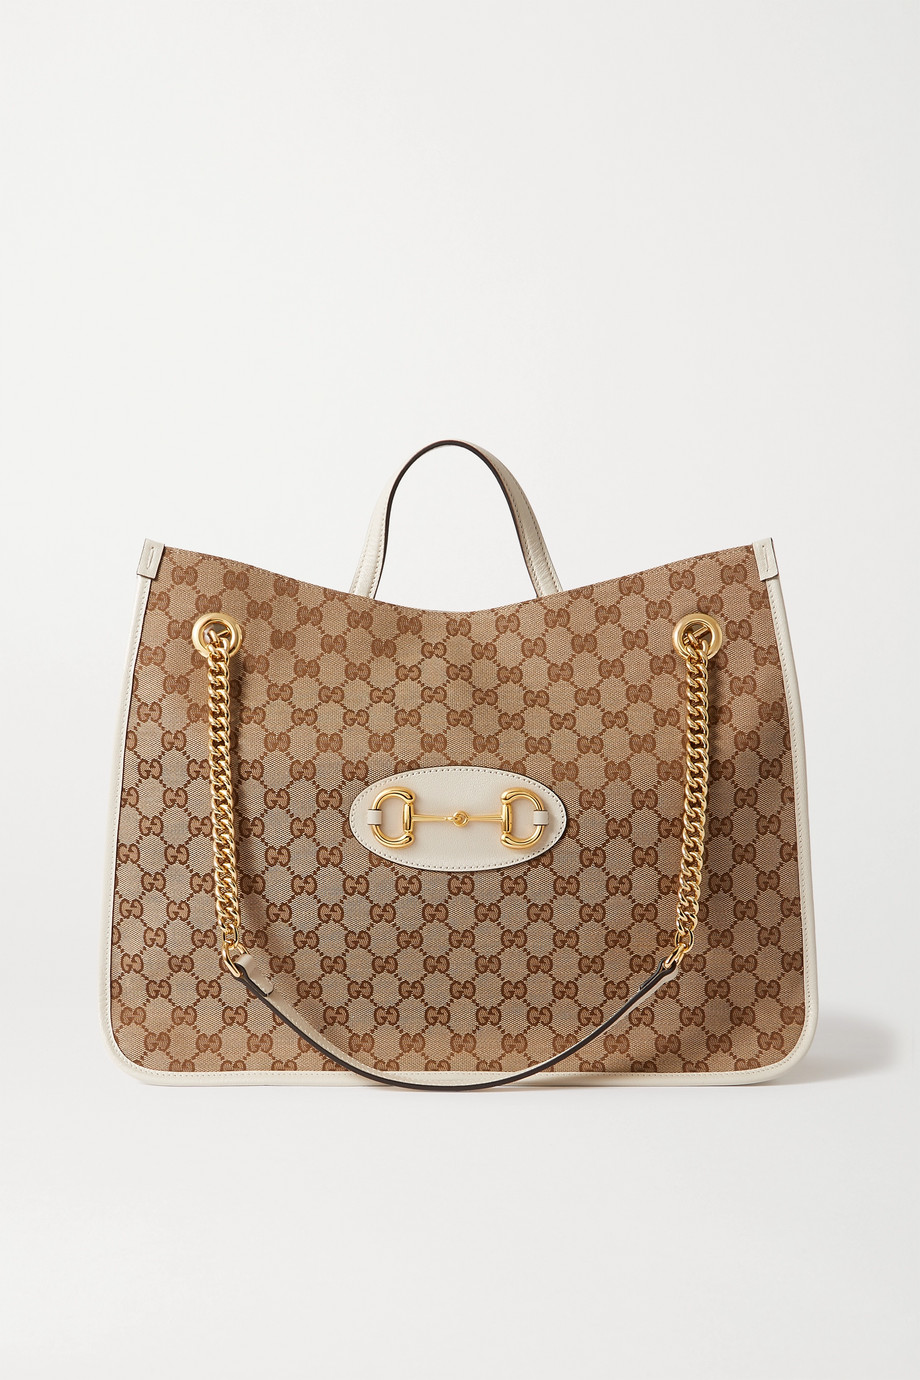 Gucci 1955 Horsebit large leather-paneled printed coated-canvas tote